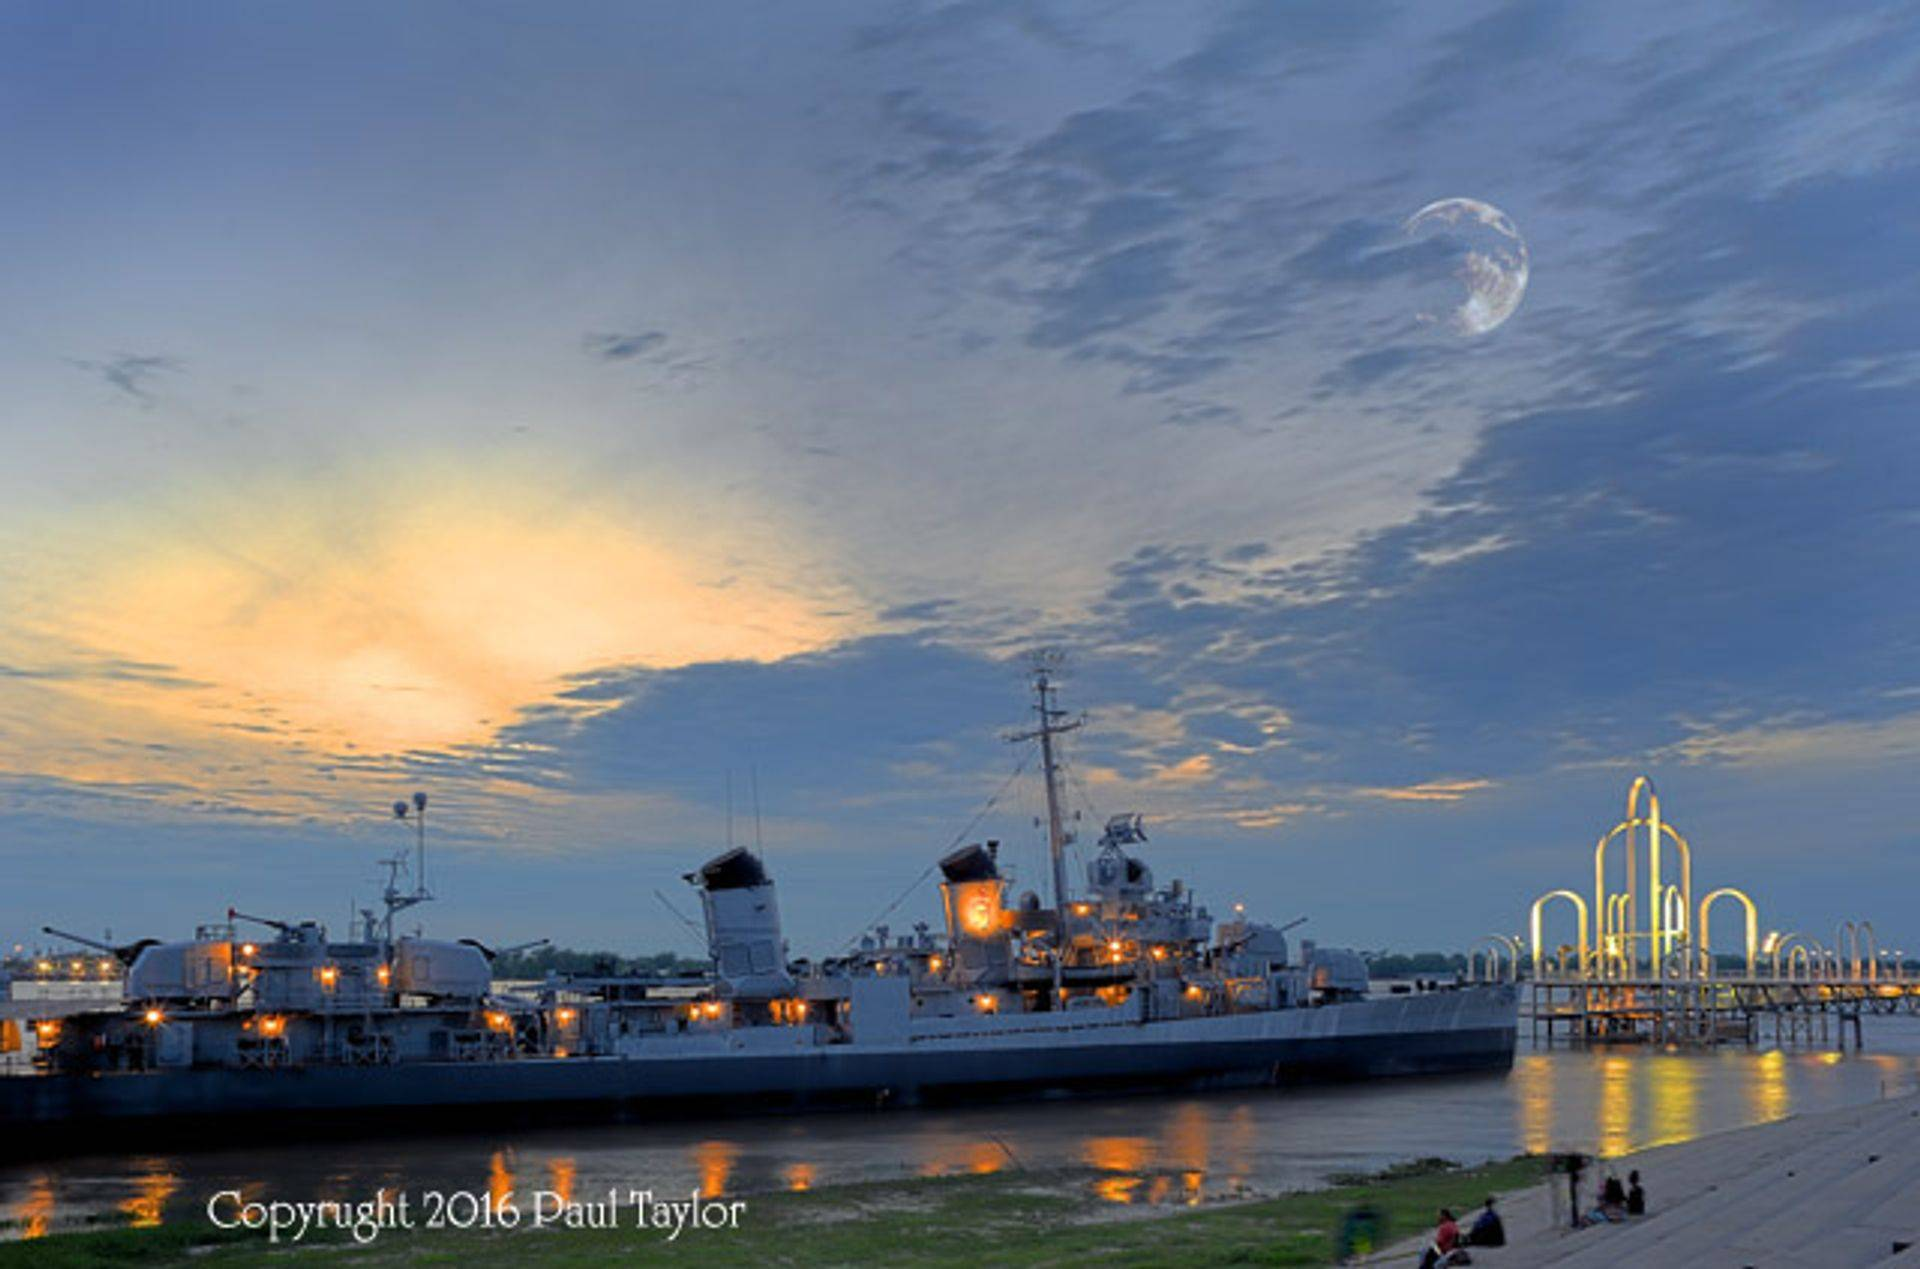 USS Kidd Destroyer, Baton Rouge, dusk with moon in clouds